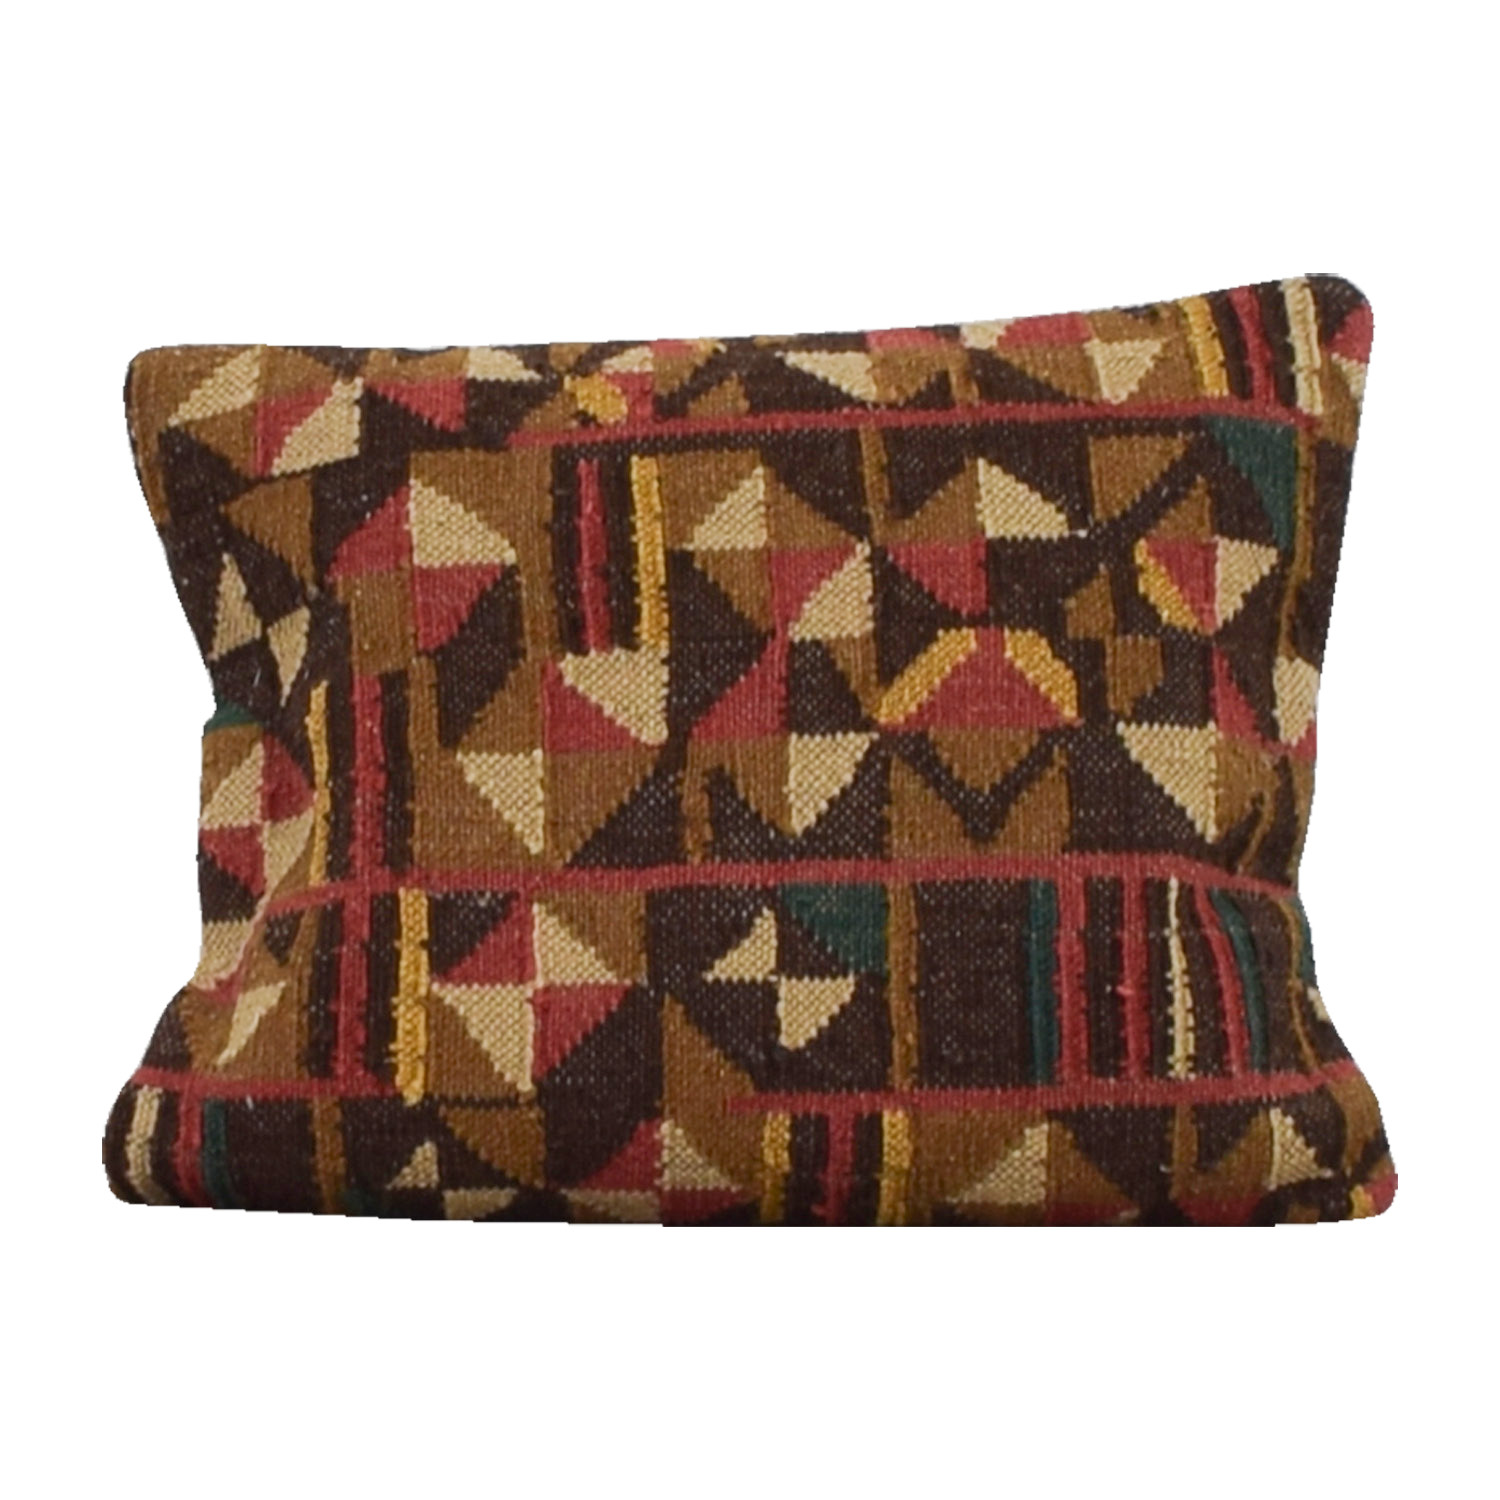 buy Obeetee Brown Red and Beige Textual Toss Pillow Obeetee Decor